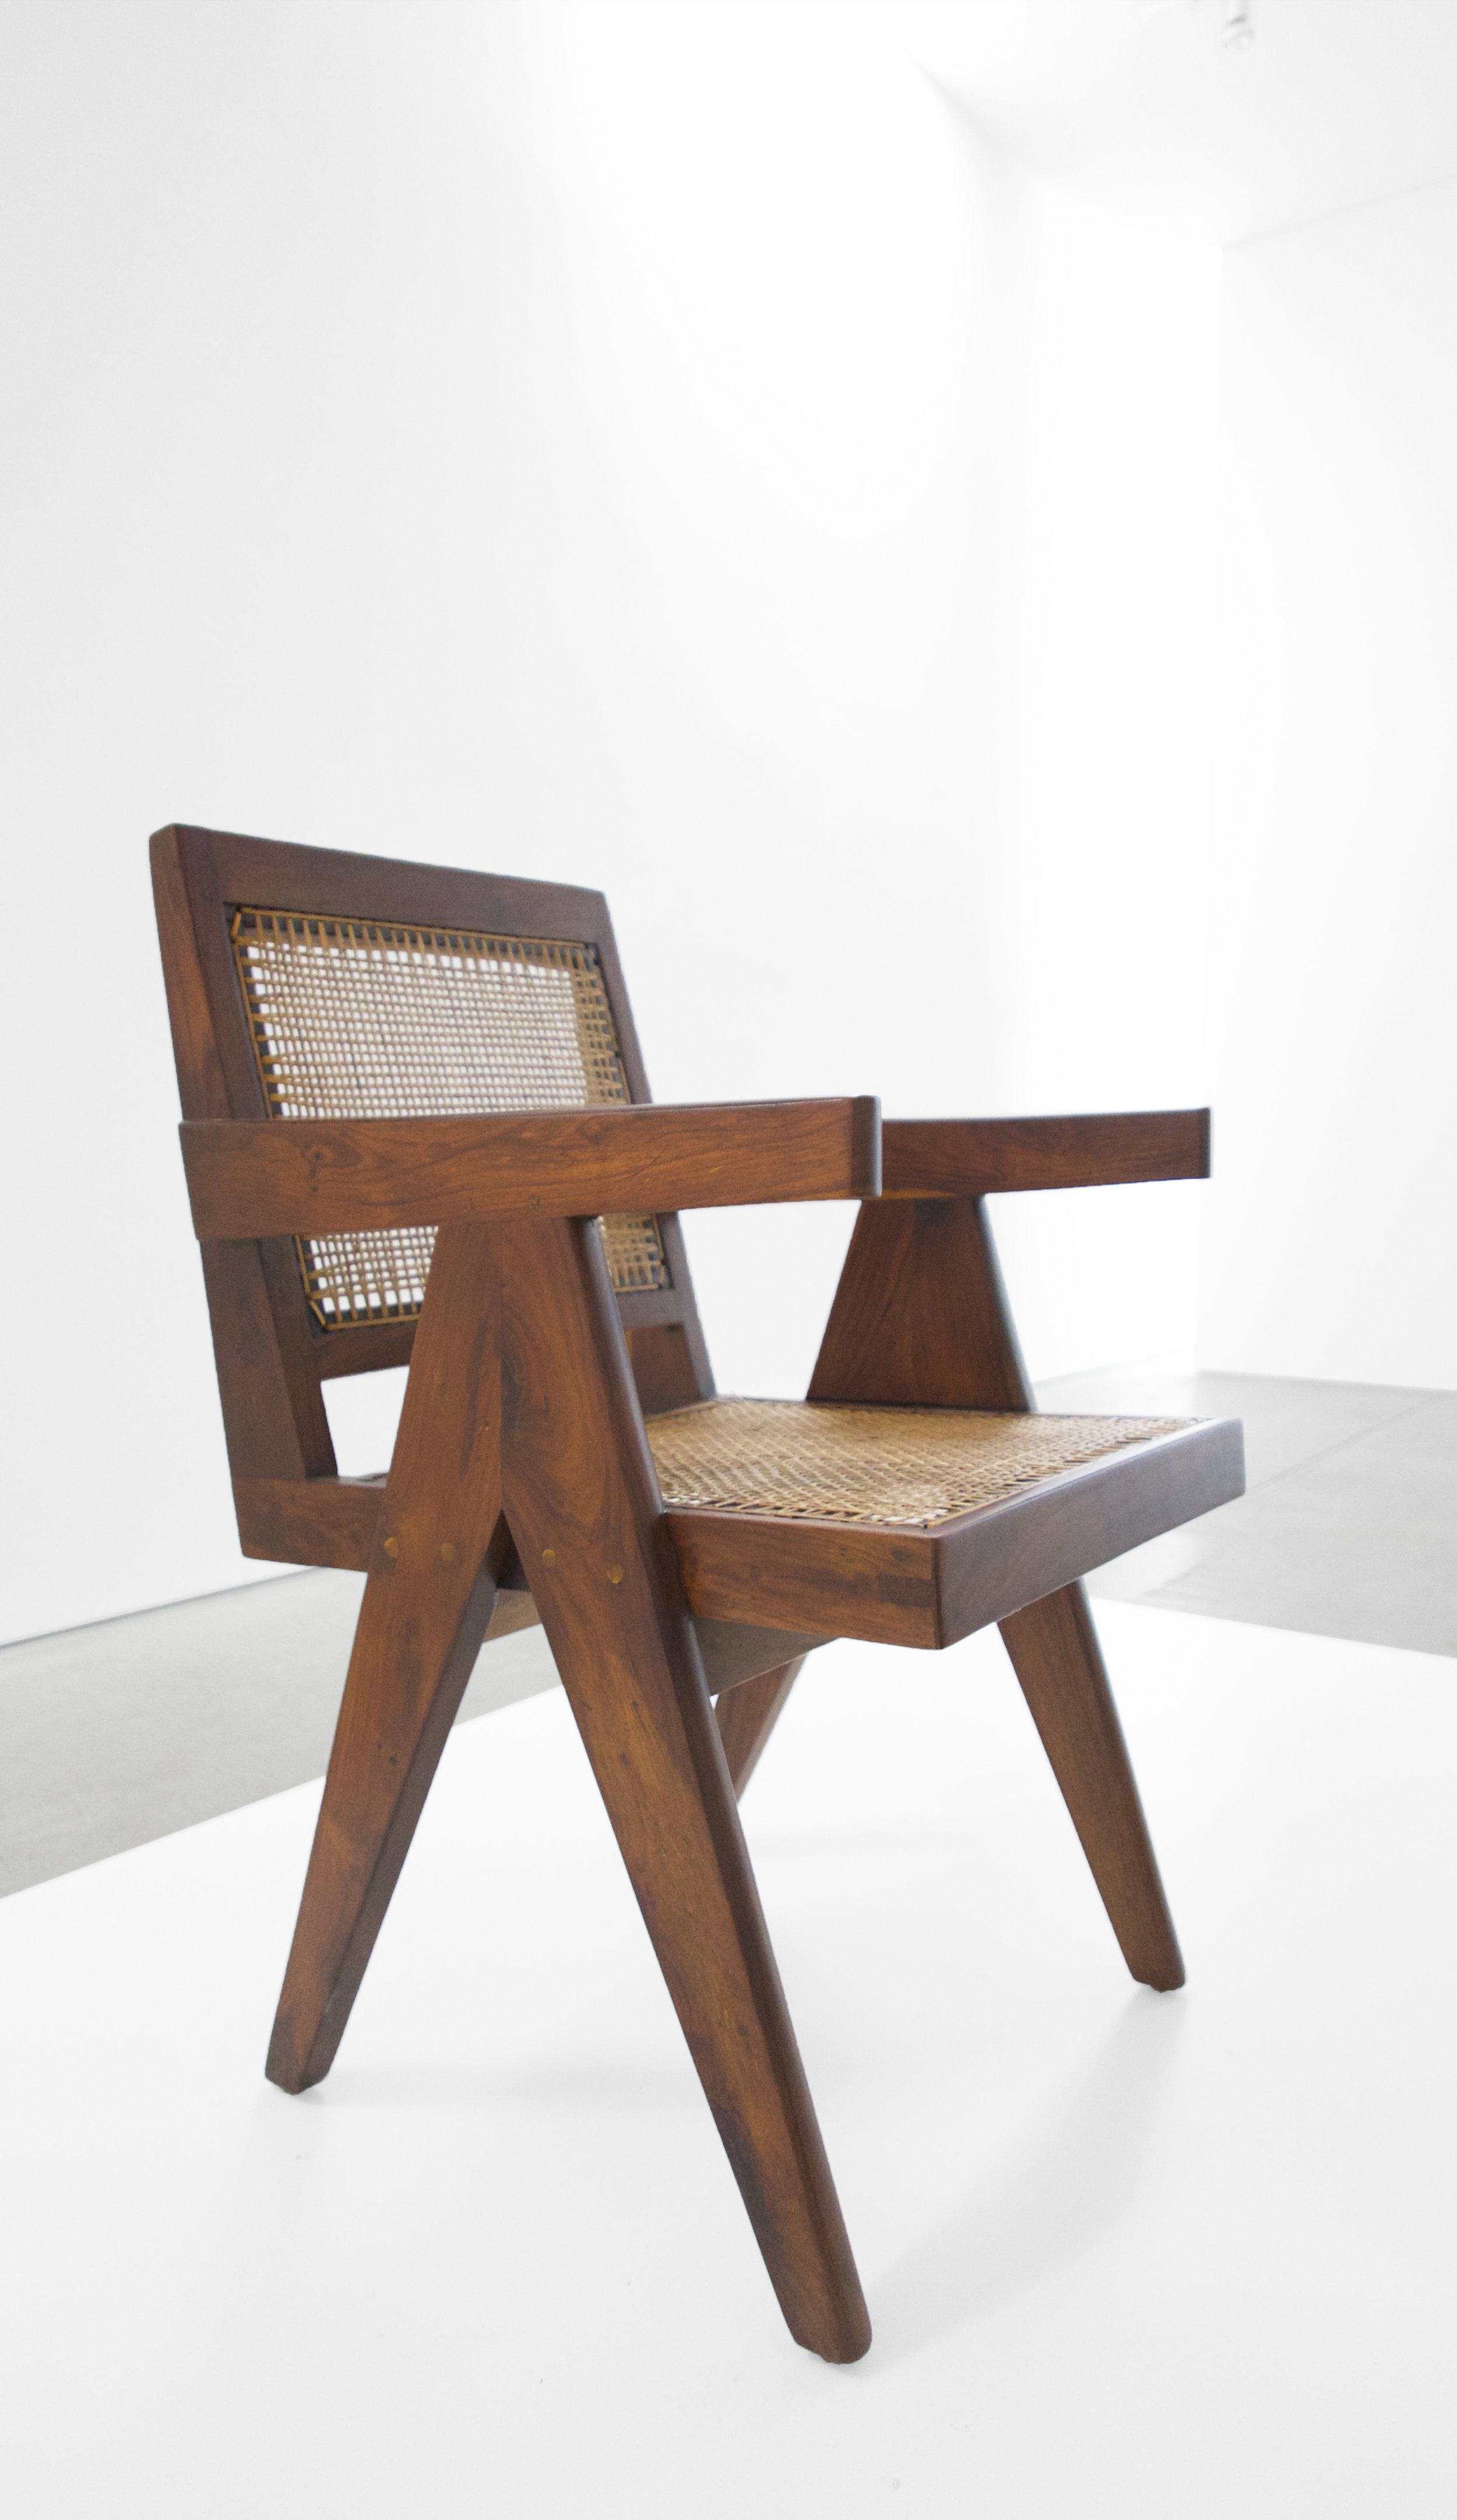 Pierre Jeanneret, Teak Conference Chair from the City of Chandigarh, India, c. 1952, 31 H x 18 W x 19.75 D inches_2.jpg